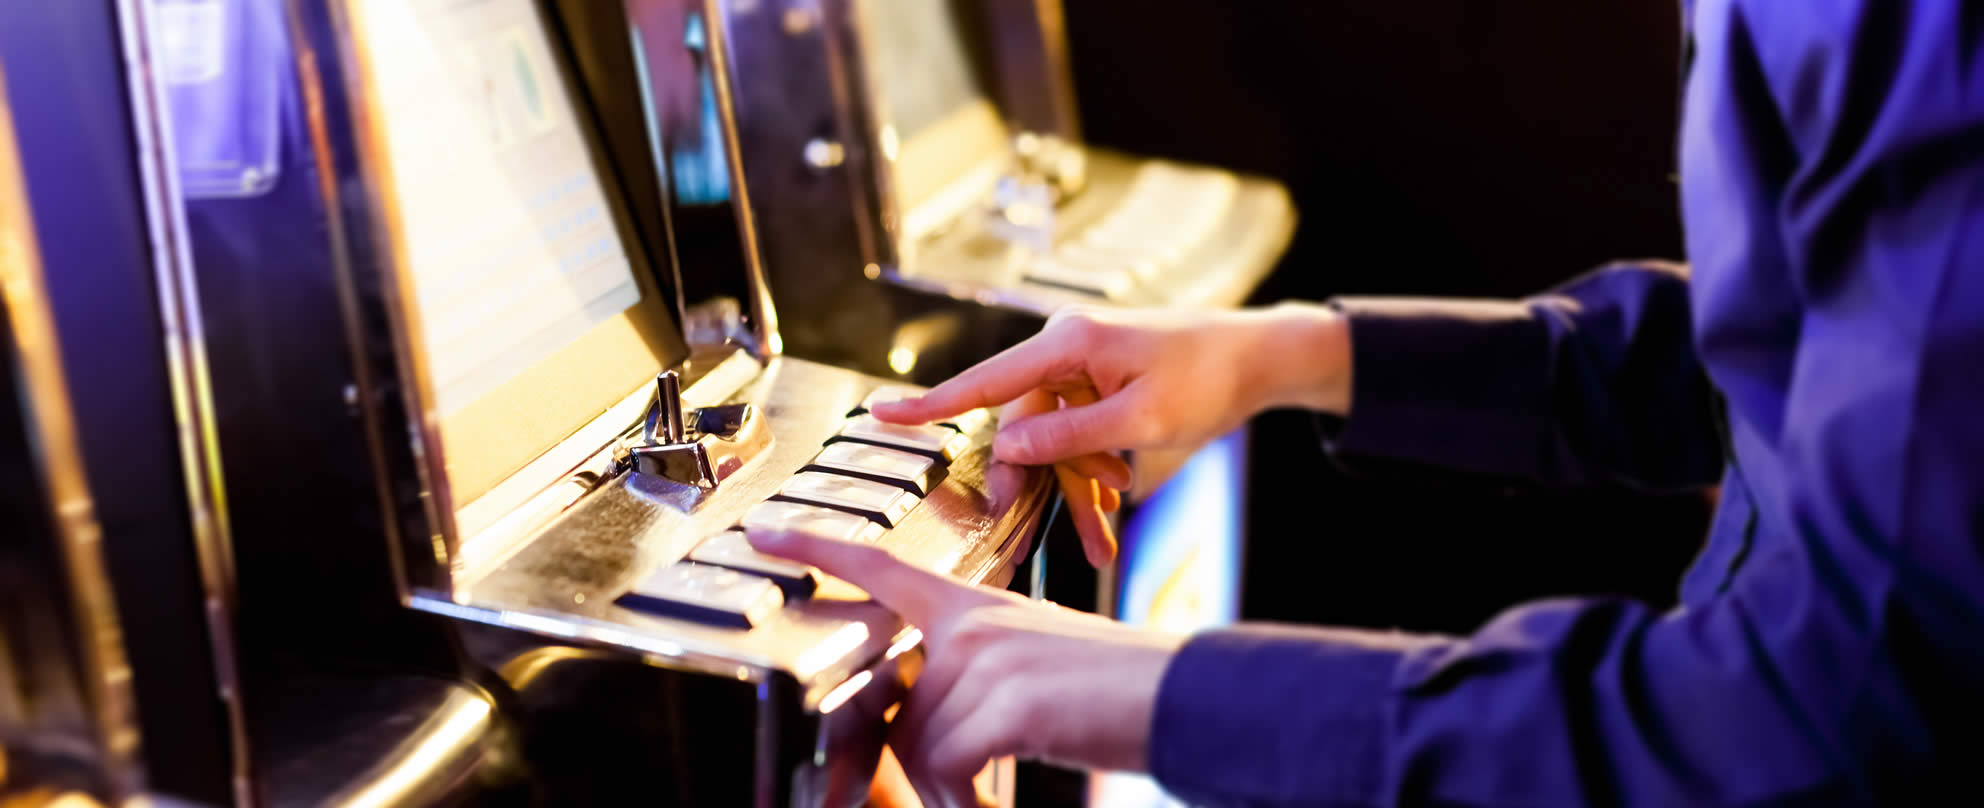 Man in a gambling venue with his fingers on the buttons of a pokie machine